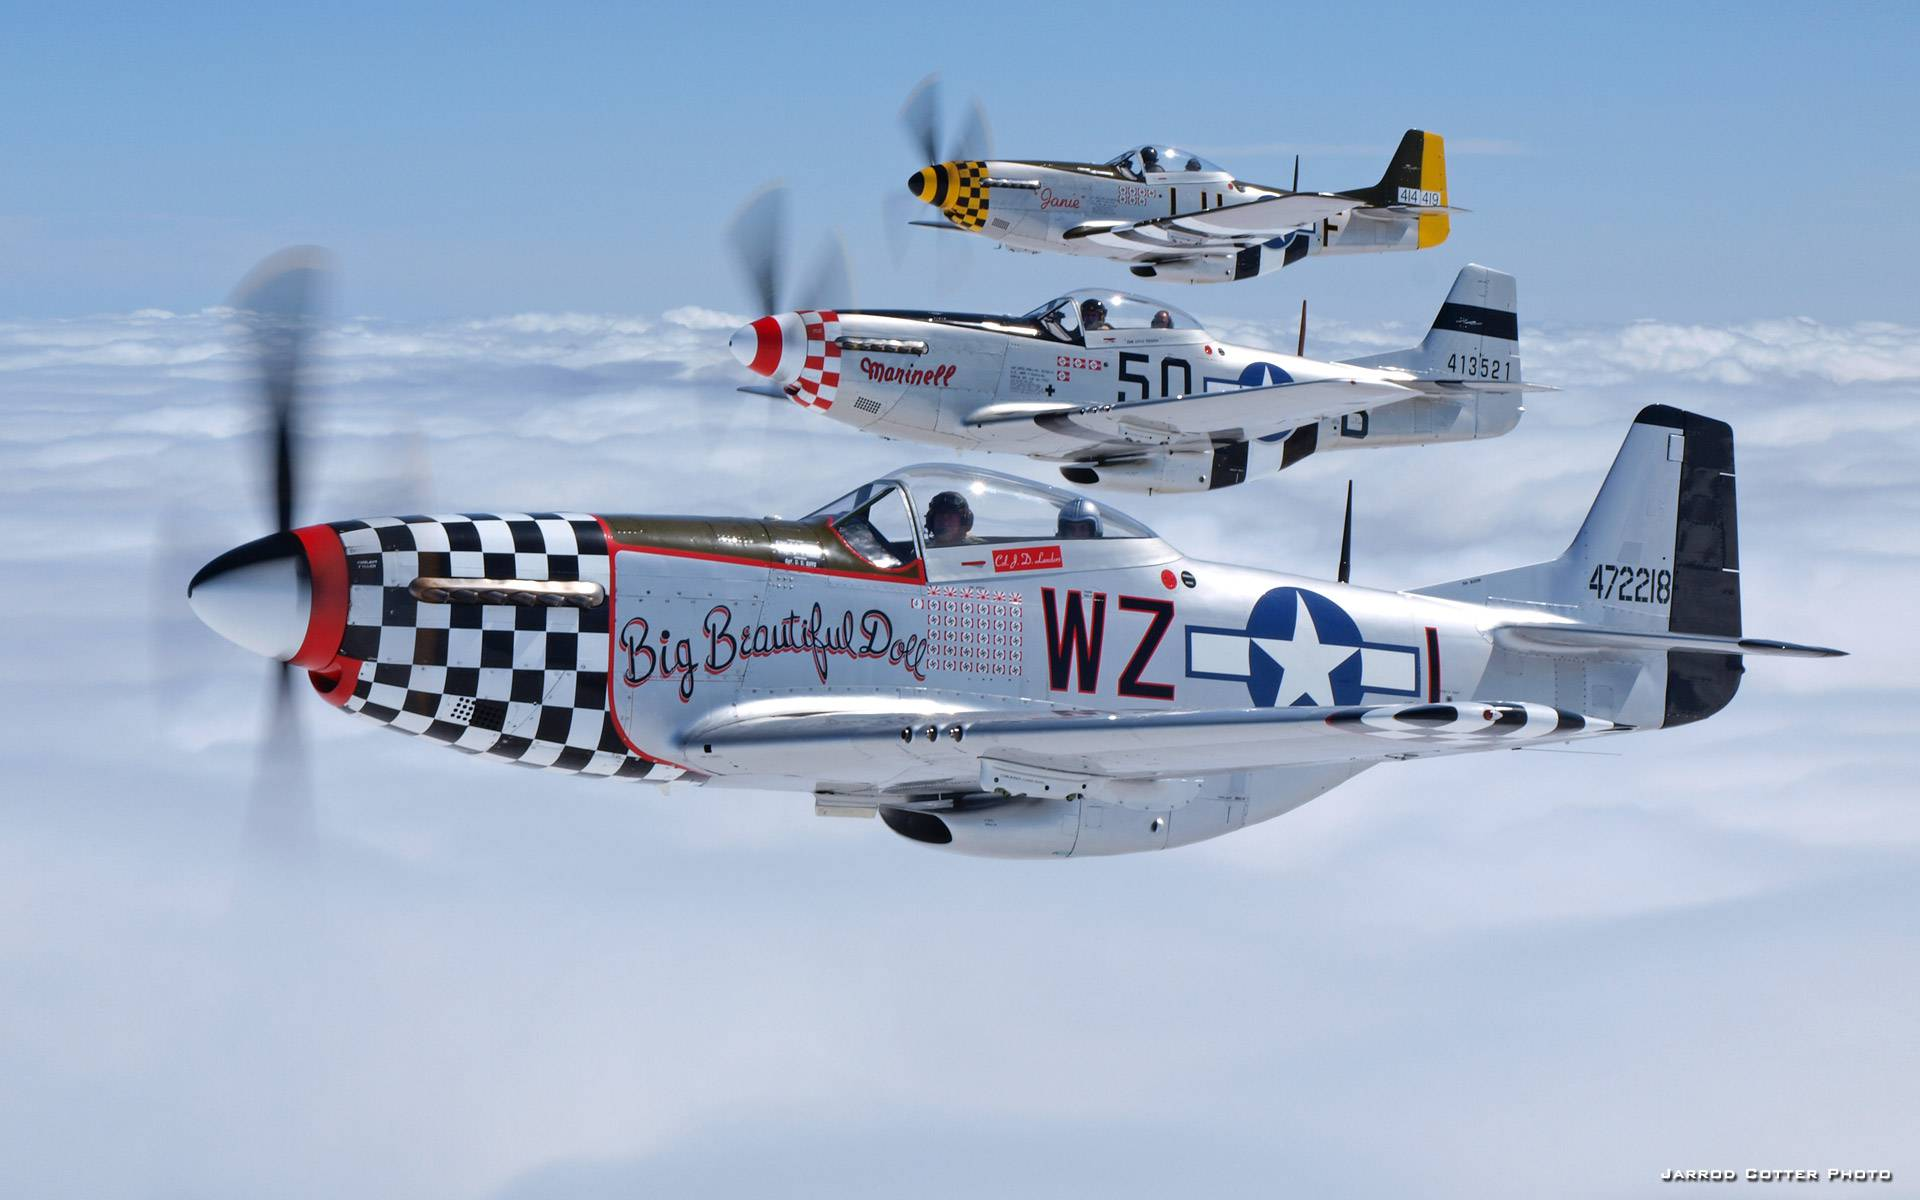 P 51 Mustang Wallpaper P51 Mustang Wallpapers...